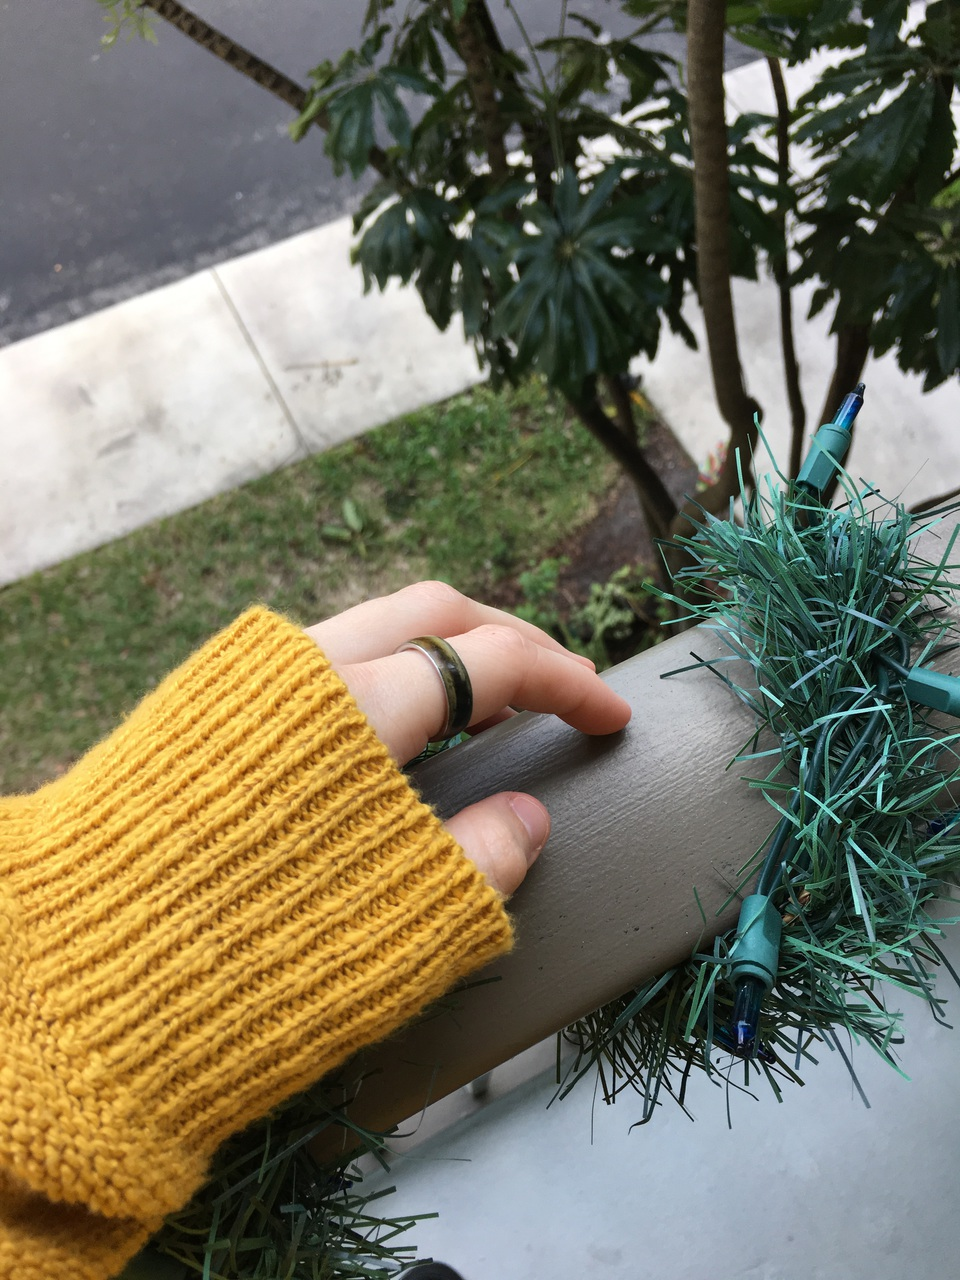 aesthetic, camera, christmas, fairy, fingers, garland, gold, gorgeous, green, grunge, hand, hippie, hipster, indie, knit, lights, model, mood, nails, nature, pale, photography, pretty, railing, ring, skin, sweater, tree, tumblr, yellow, iphone 6s